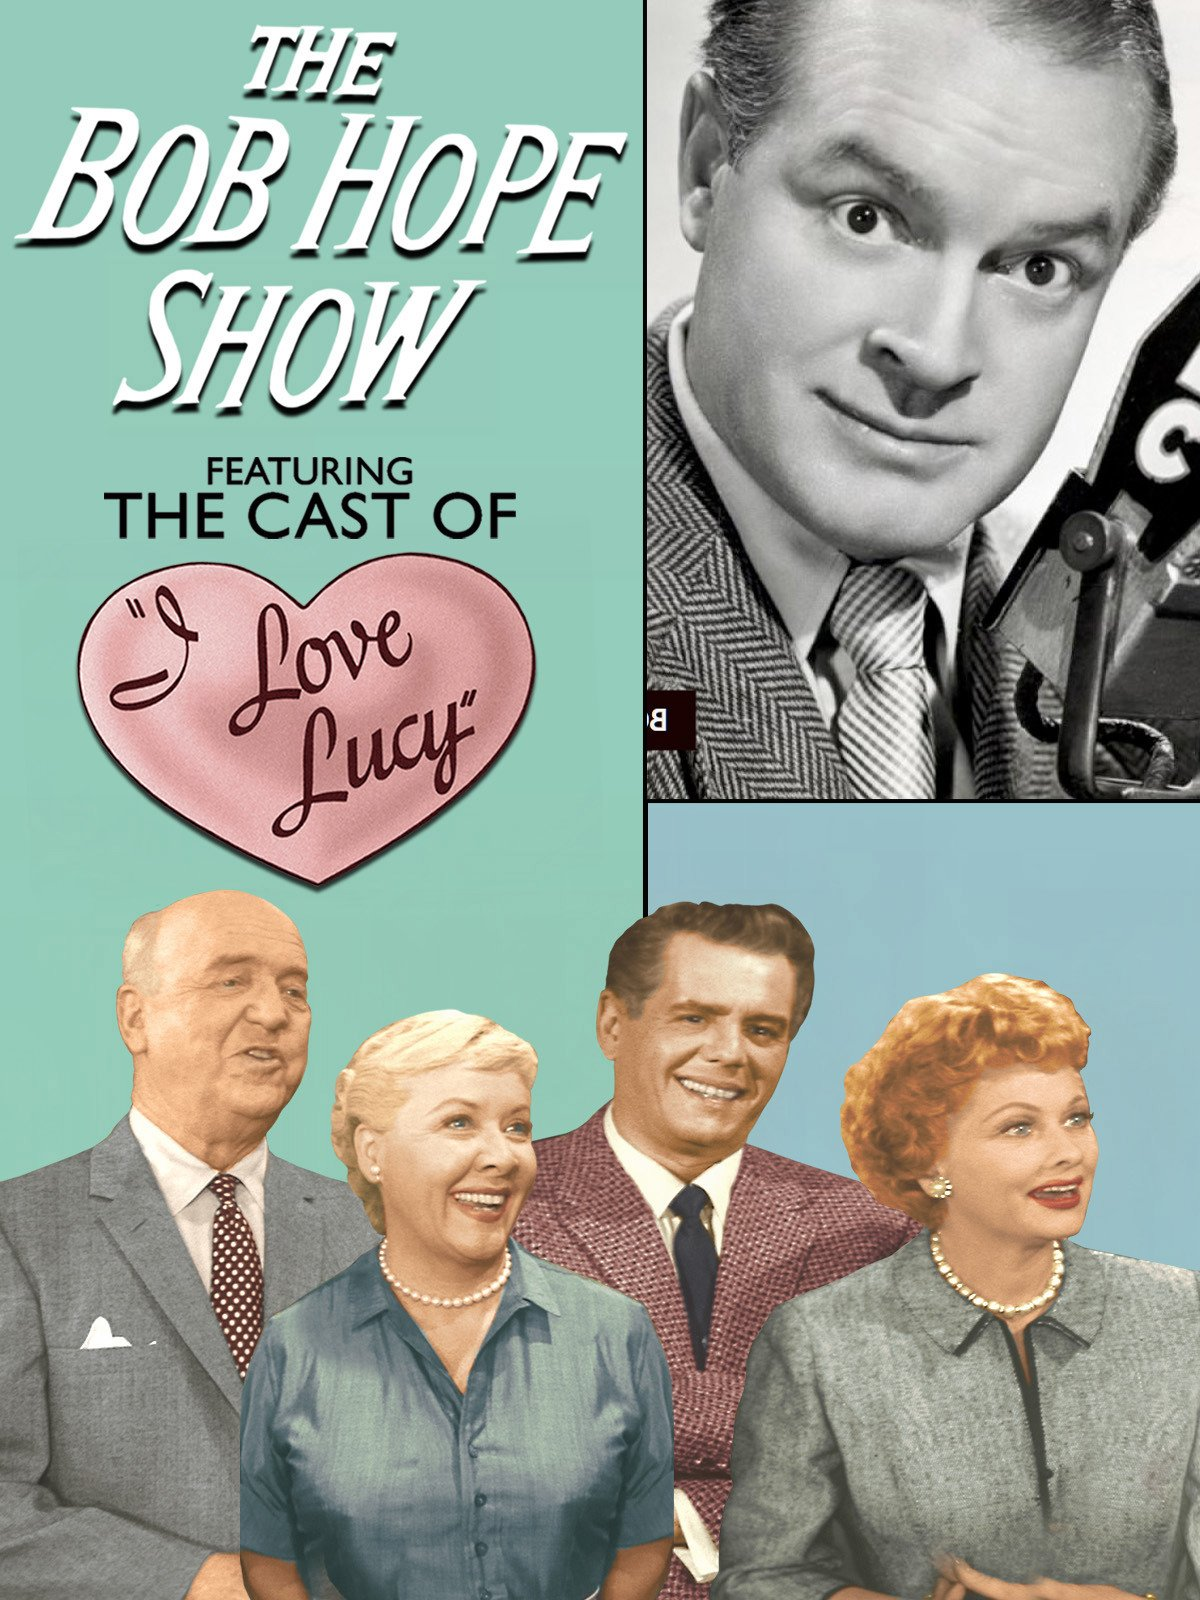 The Bob Hope Show Featuring the Cast of I Love Lucy